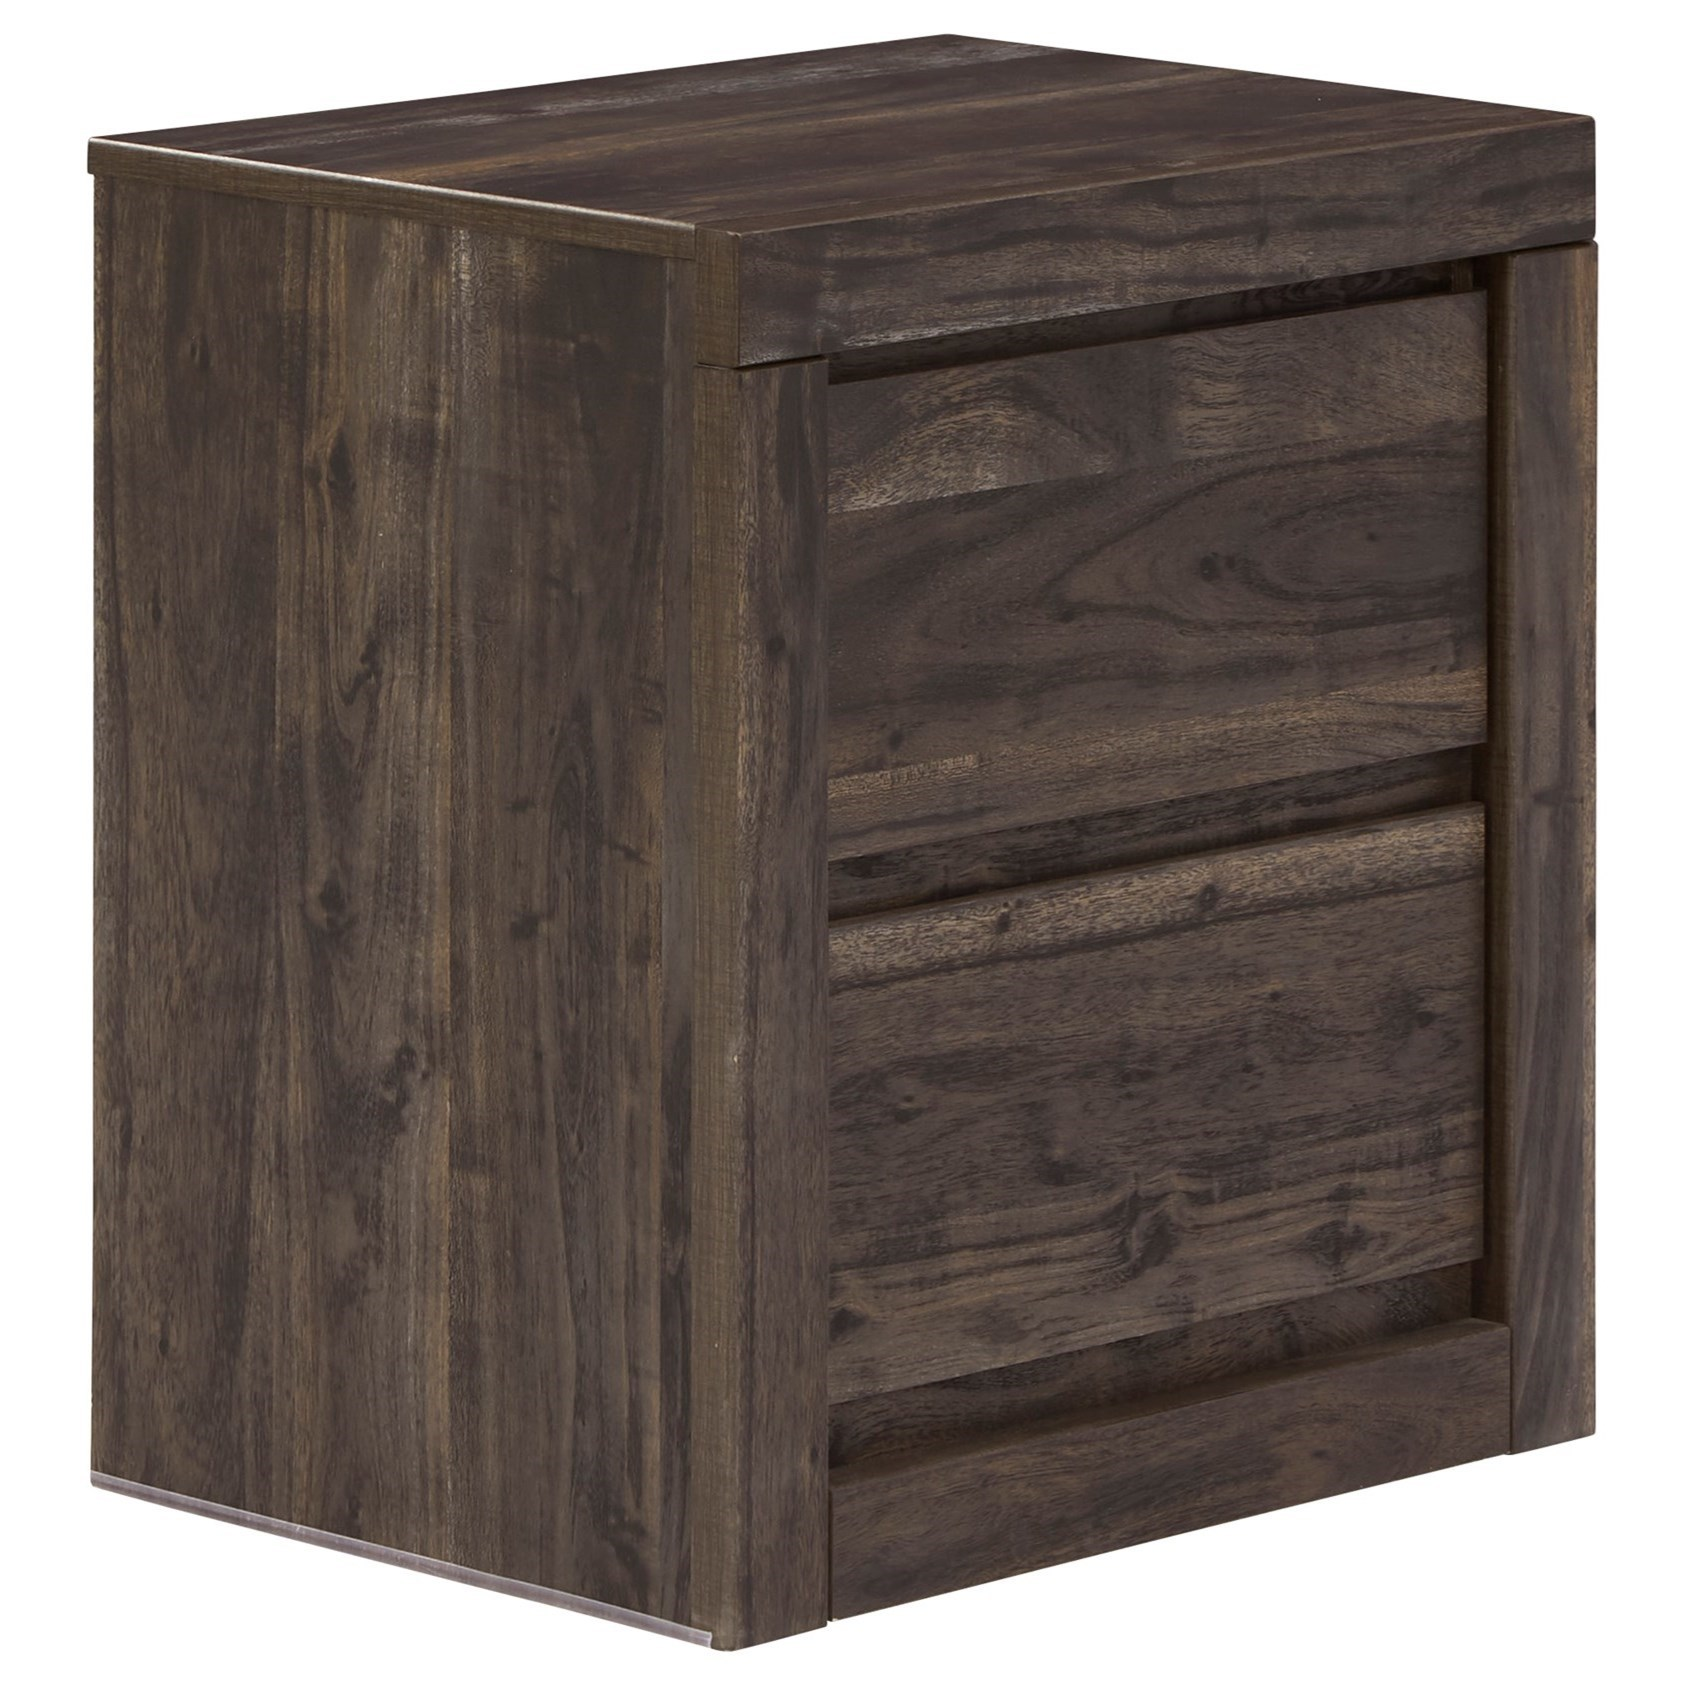 Vay Bay 2-Drawer Nightstand by Benchcraft at Simply Home by Lindy's